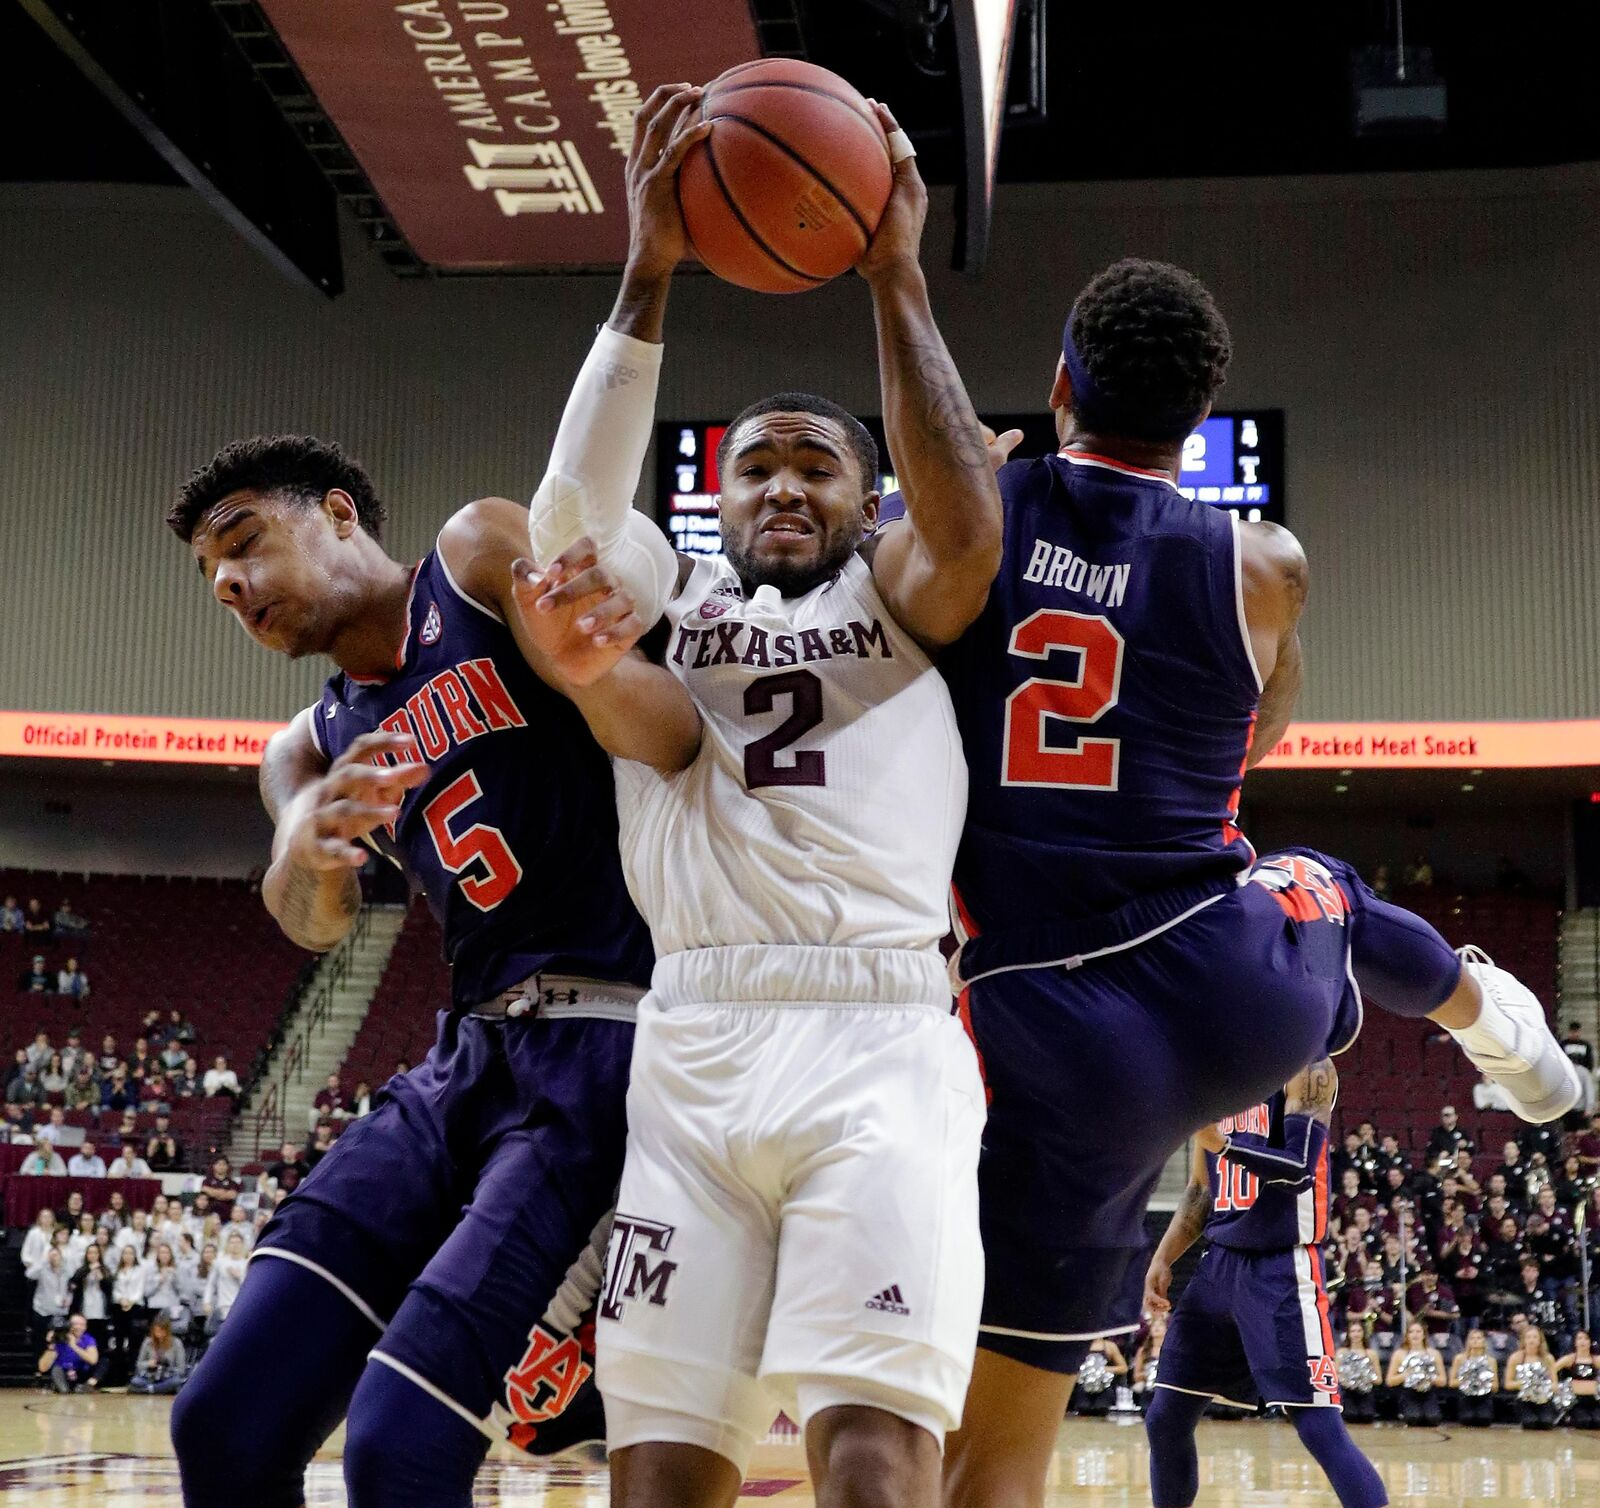 Texas A&M guard TJ Starks (2) is defended on a rebound between Auburn forward Chuma Okeke (5) and guard Bryce Brown (2) during the first half of an NCAA college basketball game, Wednesday, Jan. 16, 2019, in College Station, Texas. (AP Photo/Michael Wyke)